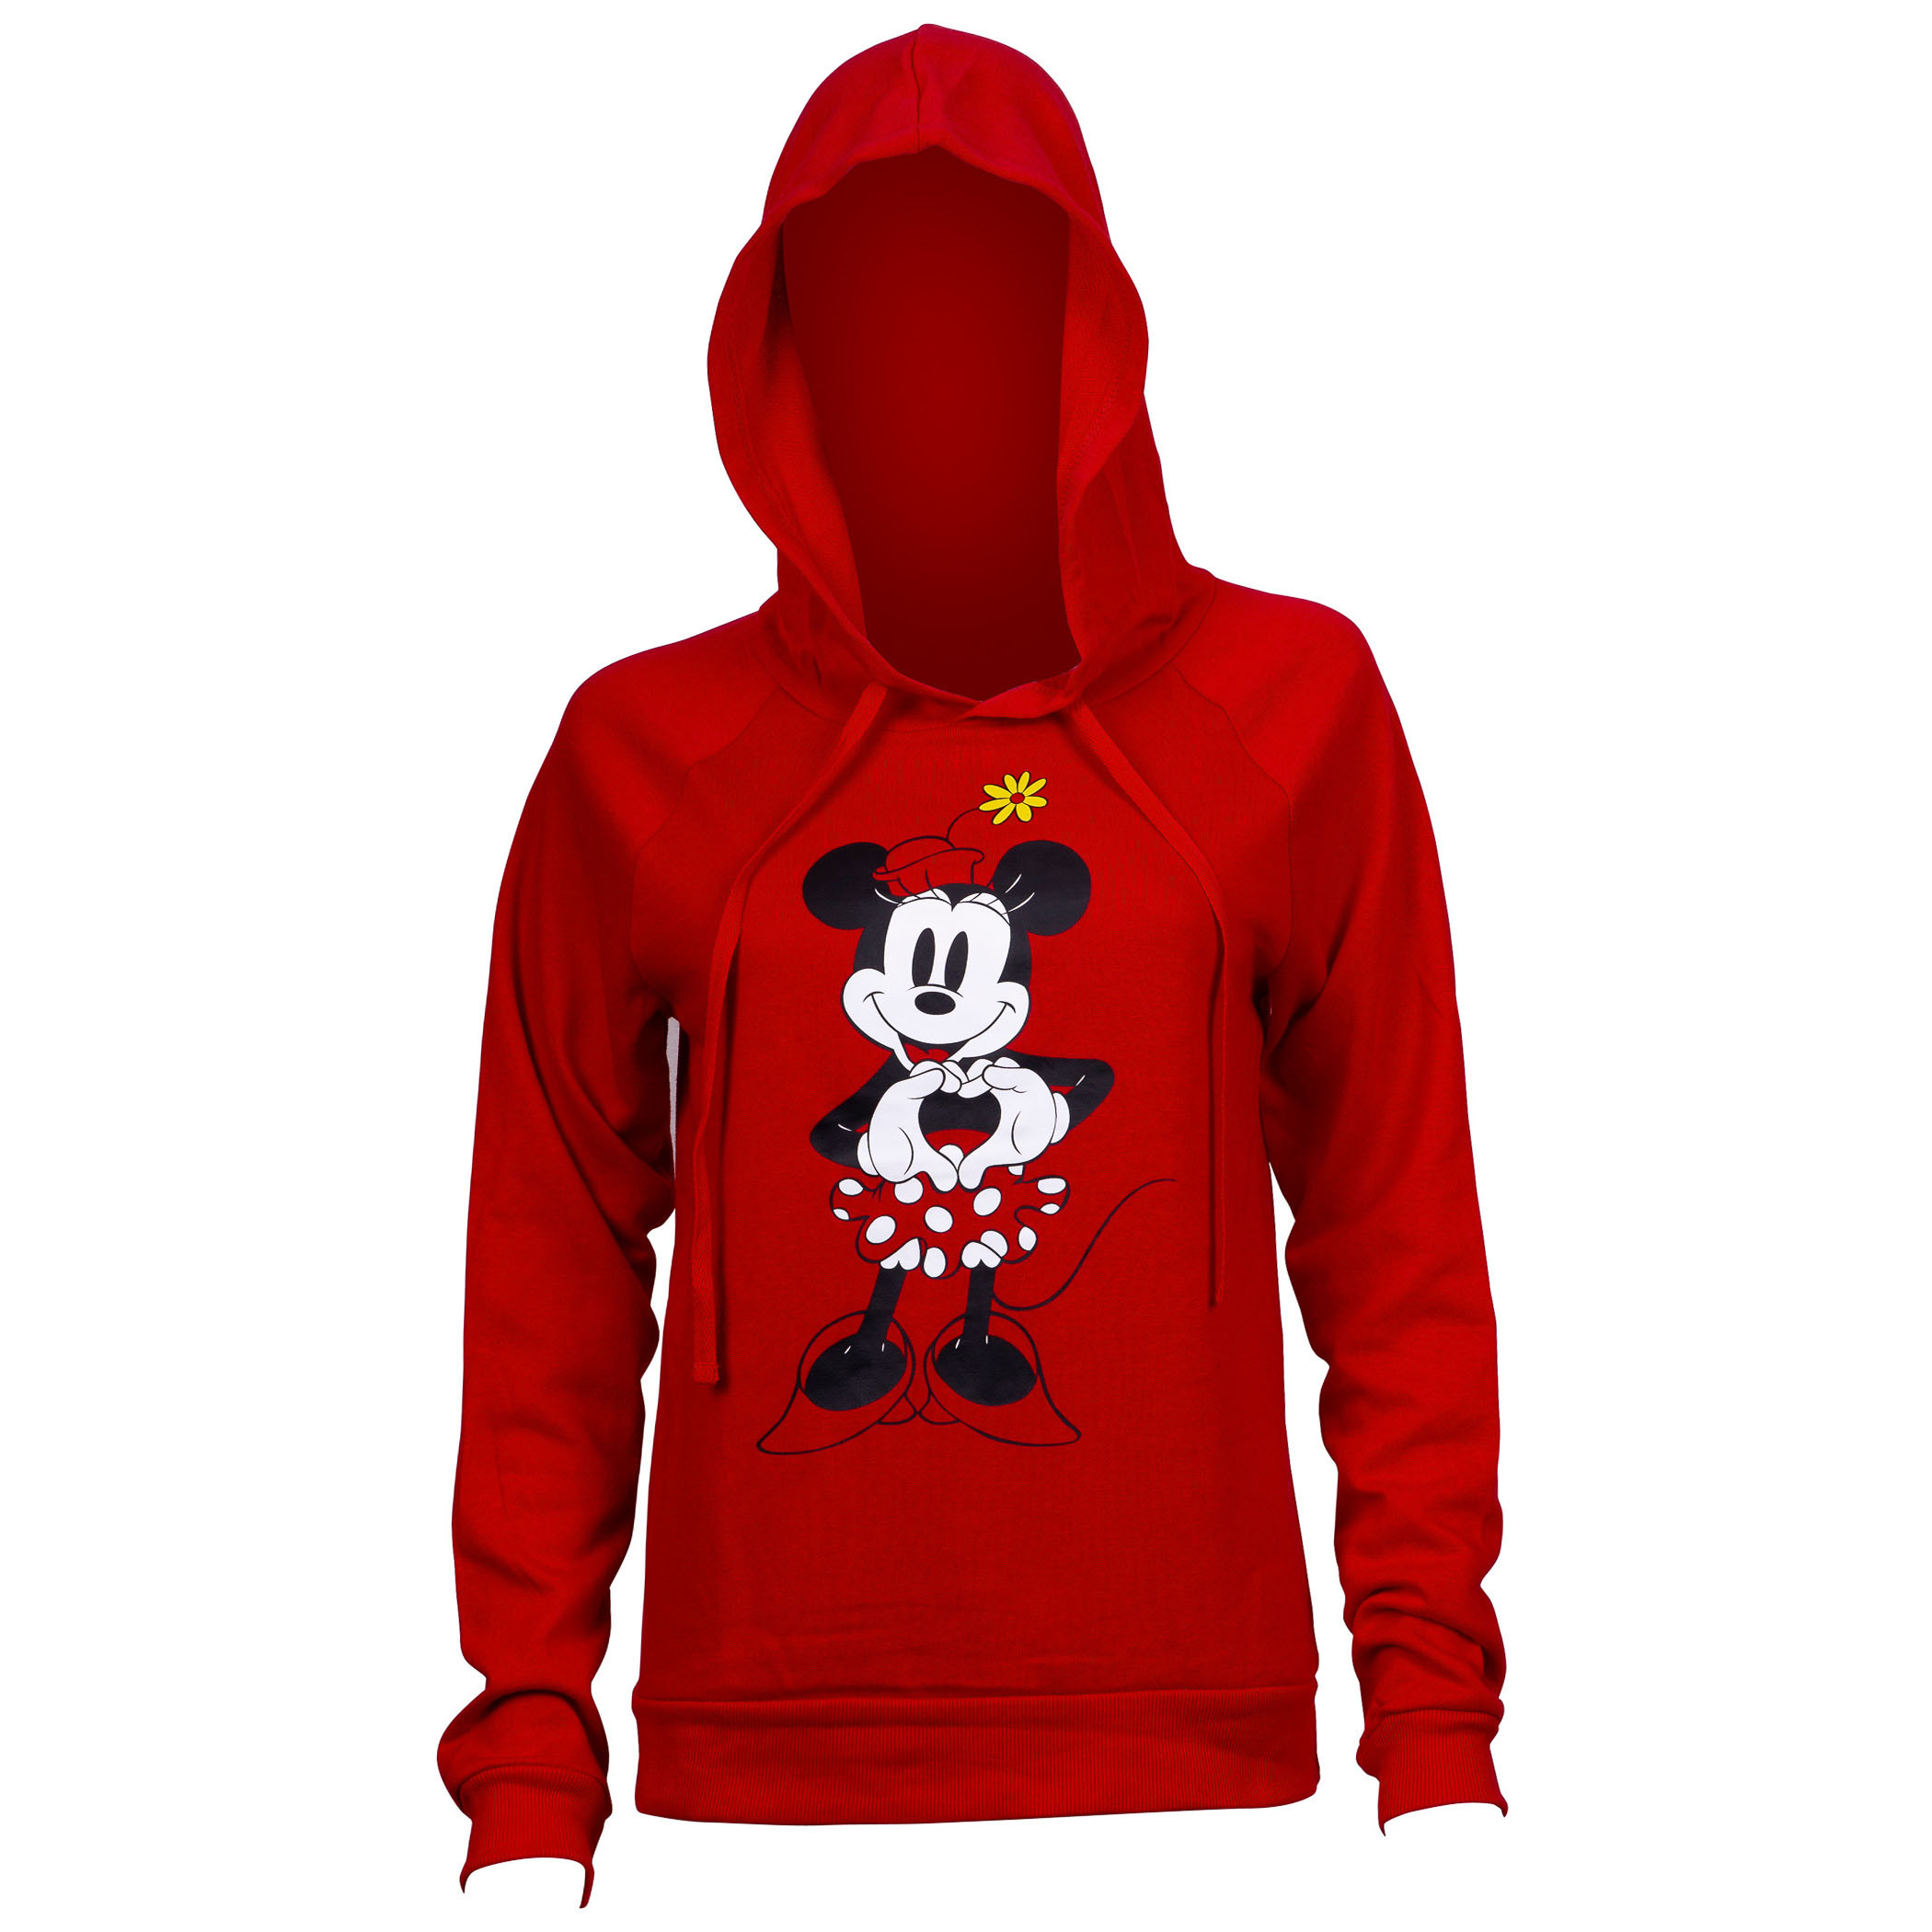 Minnie Mouse Heart Red Juniors Fitted Hoodie